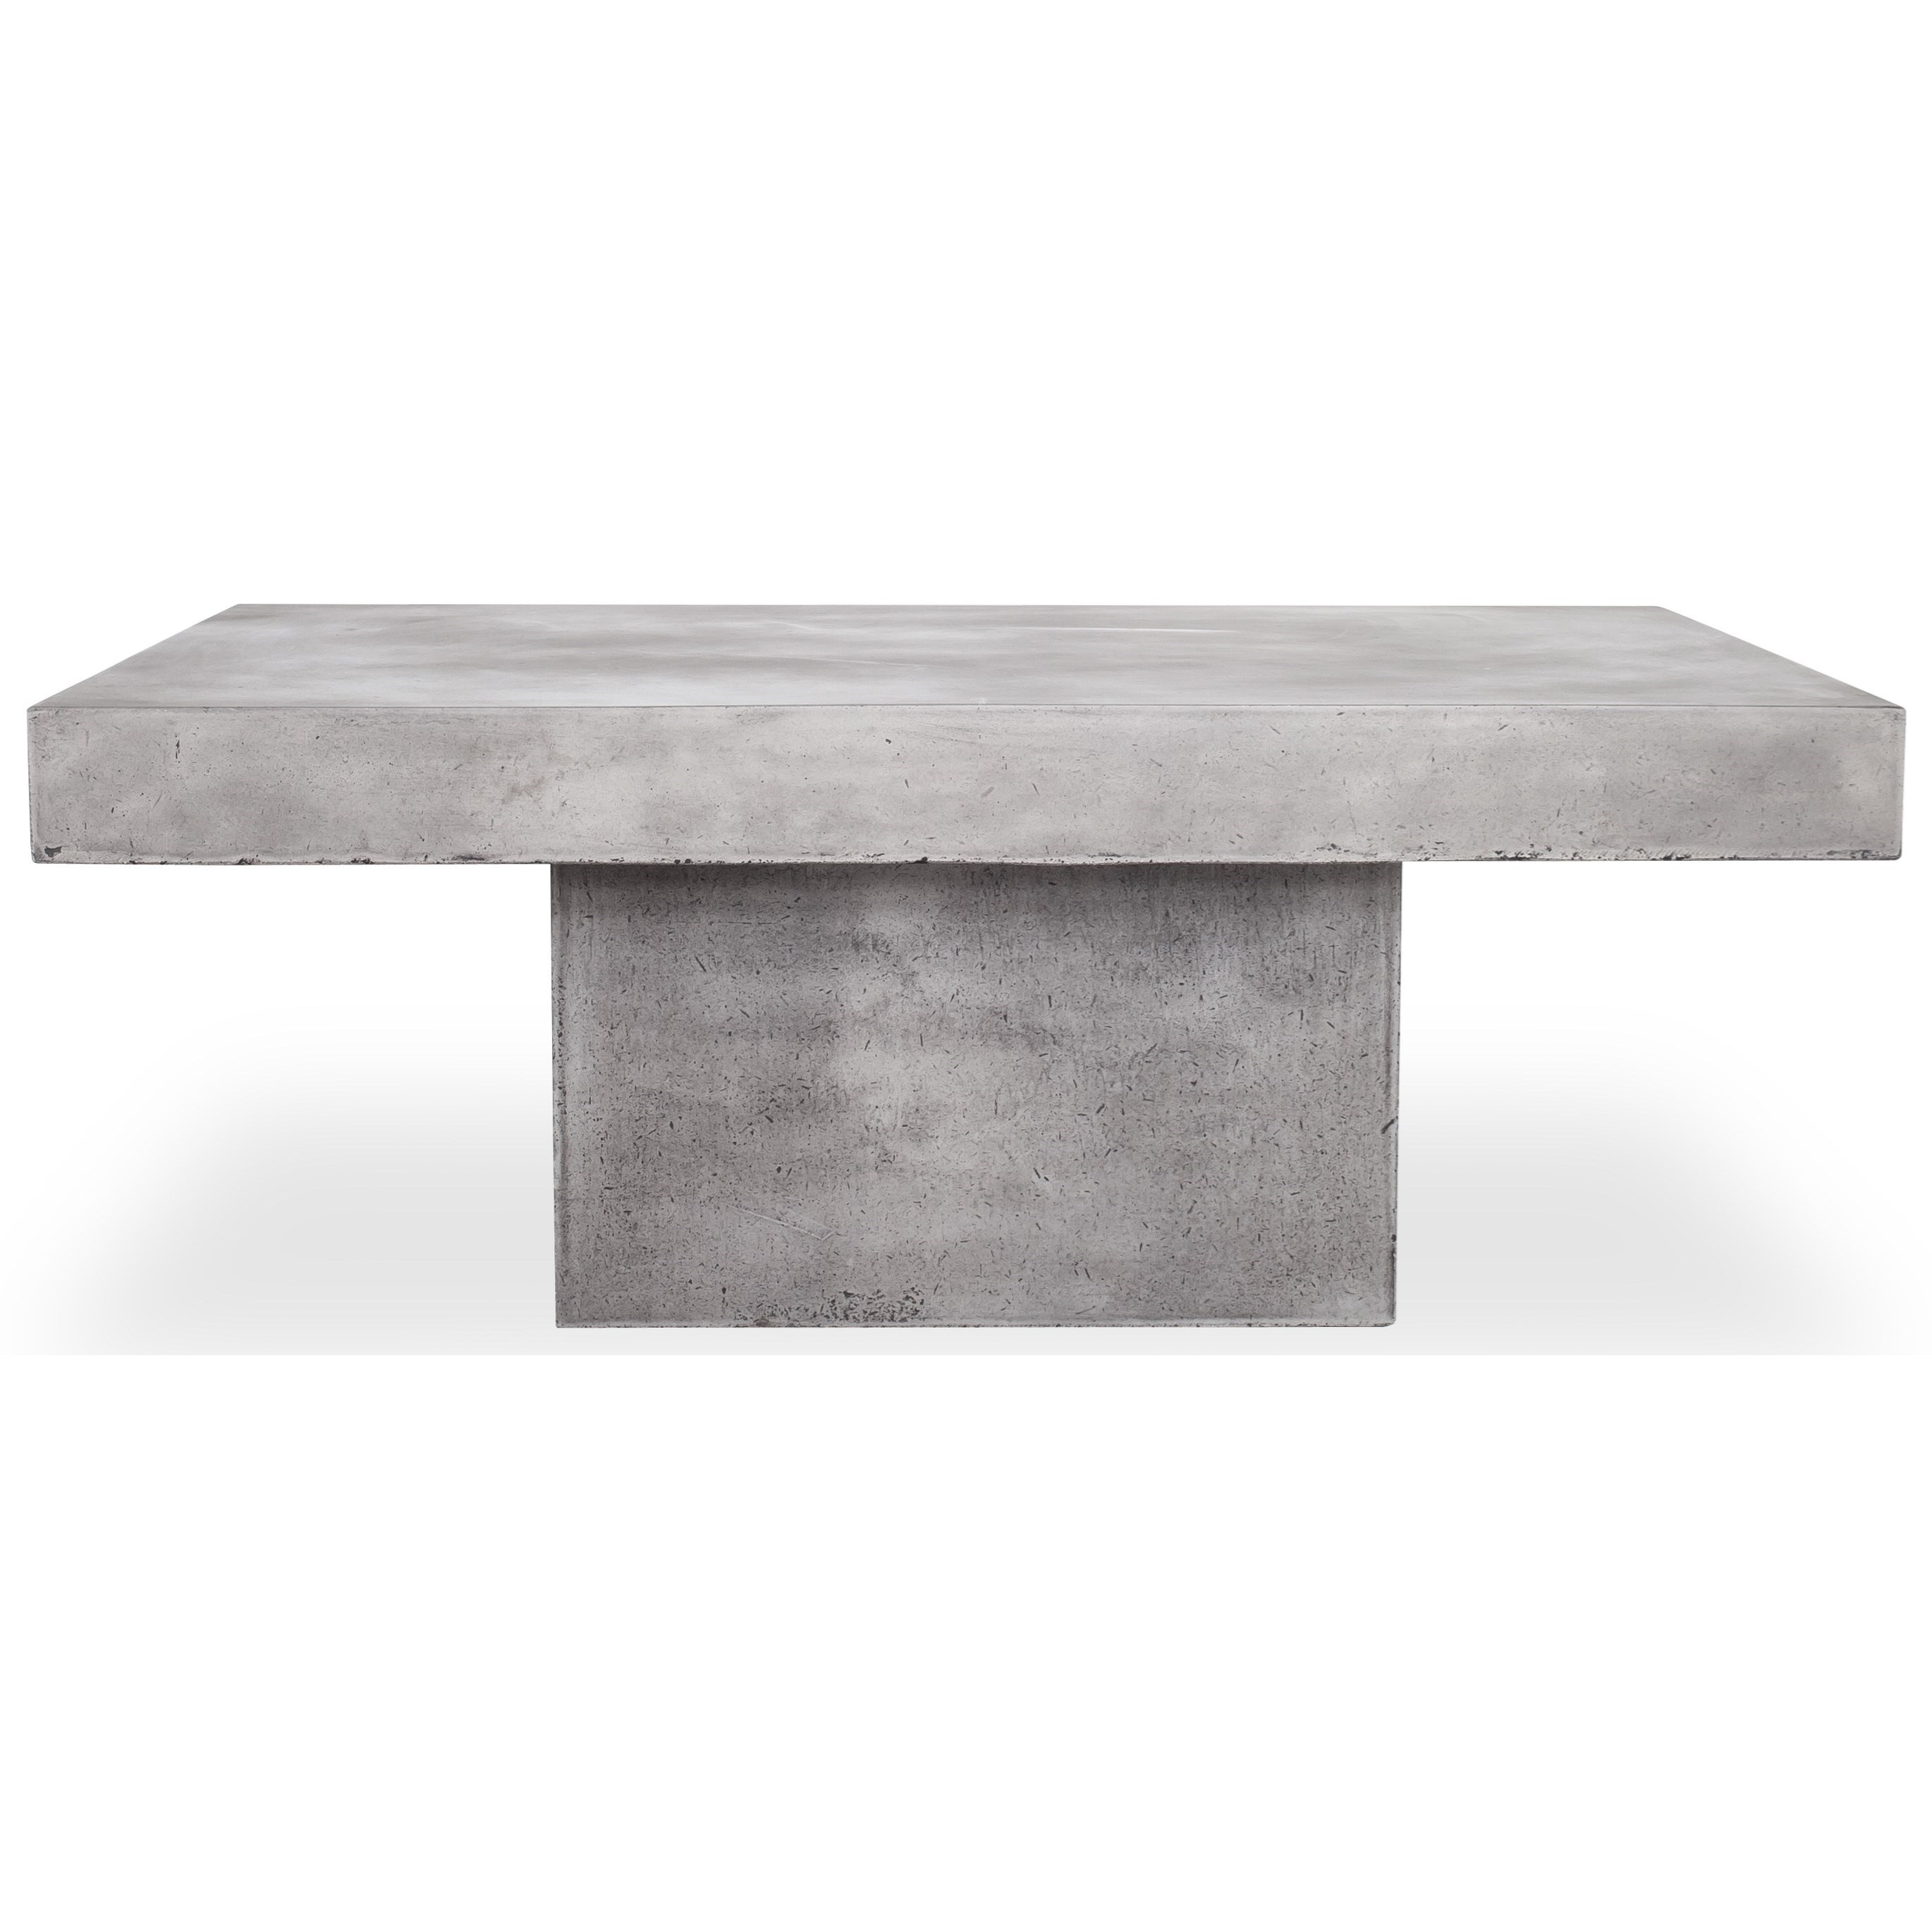 Maxima Outdoor Coffee Table by Moe's Home Collection at Stoney Creek Furniture